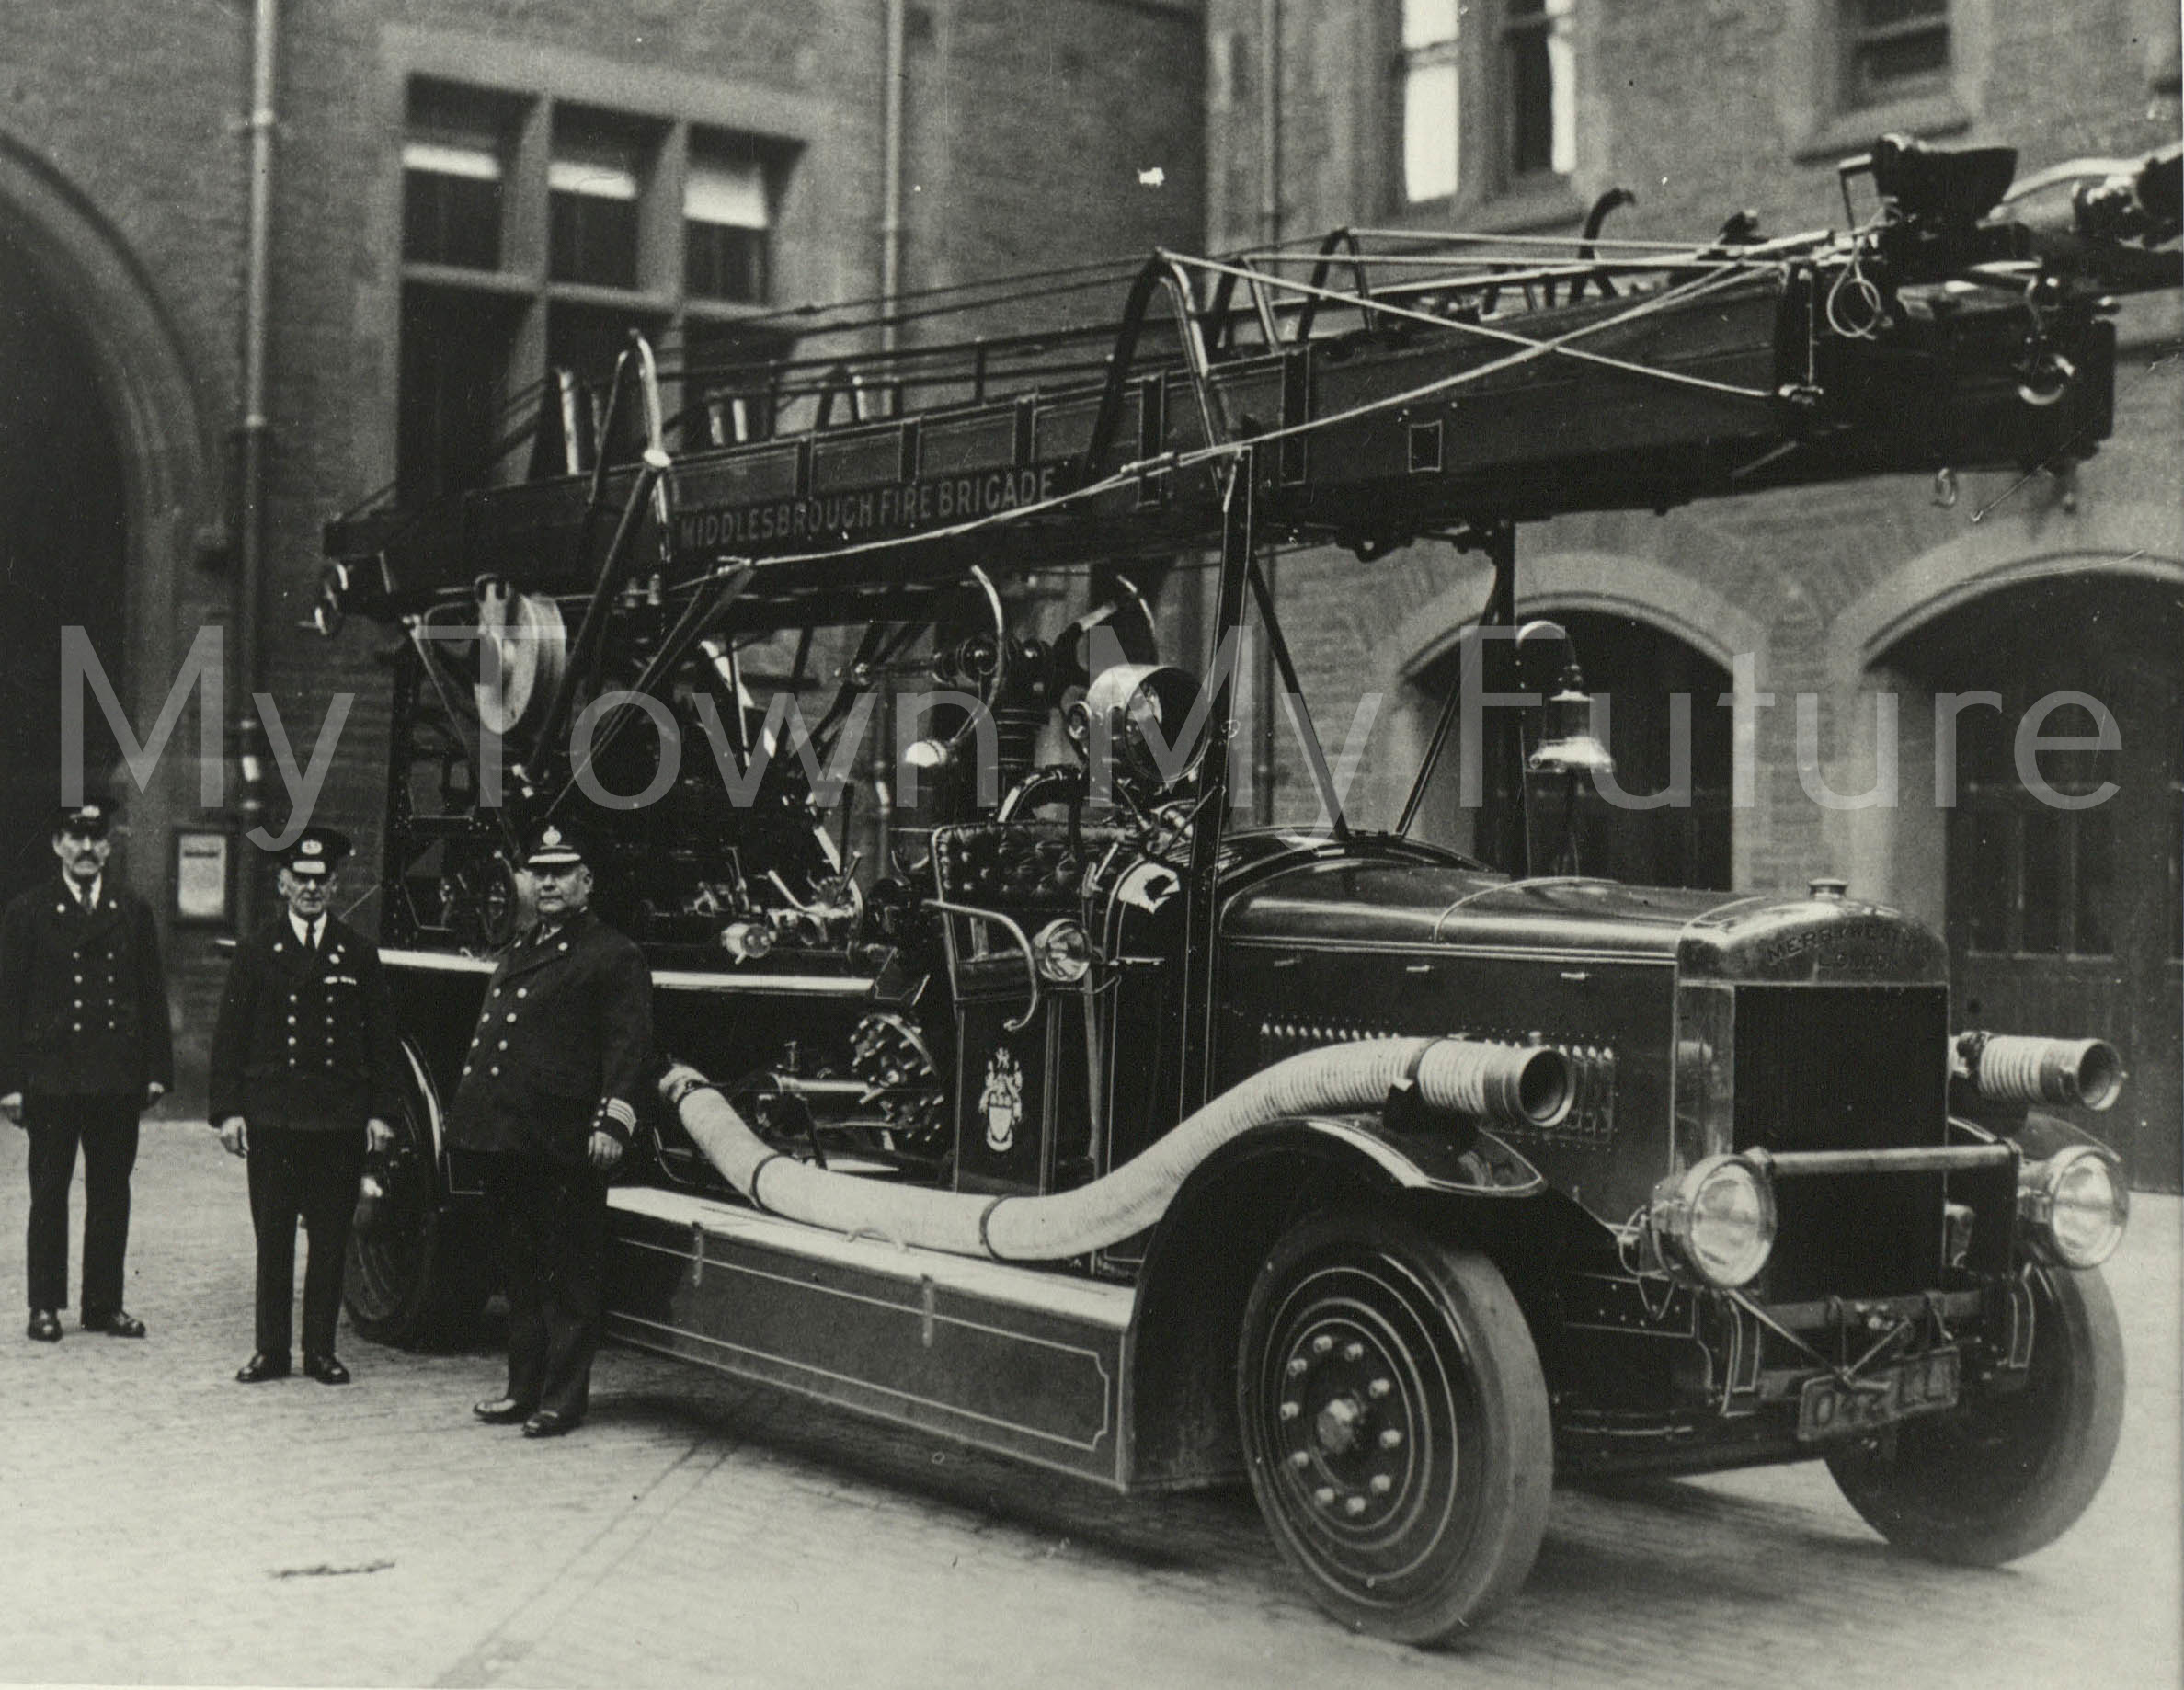 Middlesbrough Fire Brigade, 1930, Department of Planning - Cleveland County Council